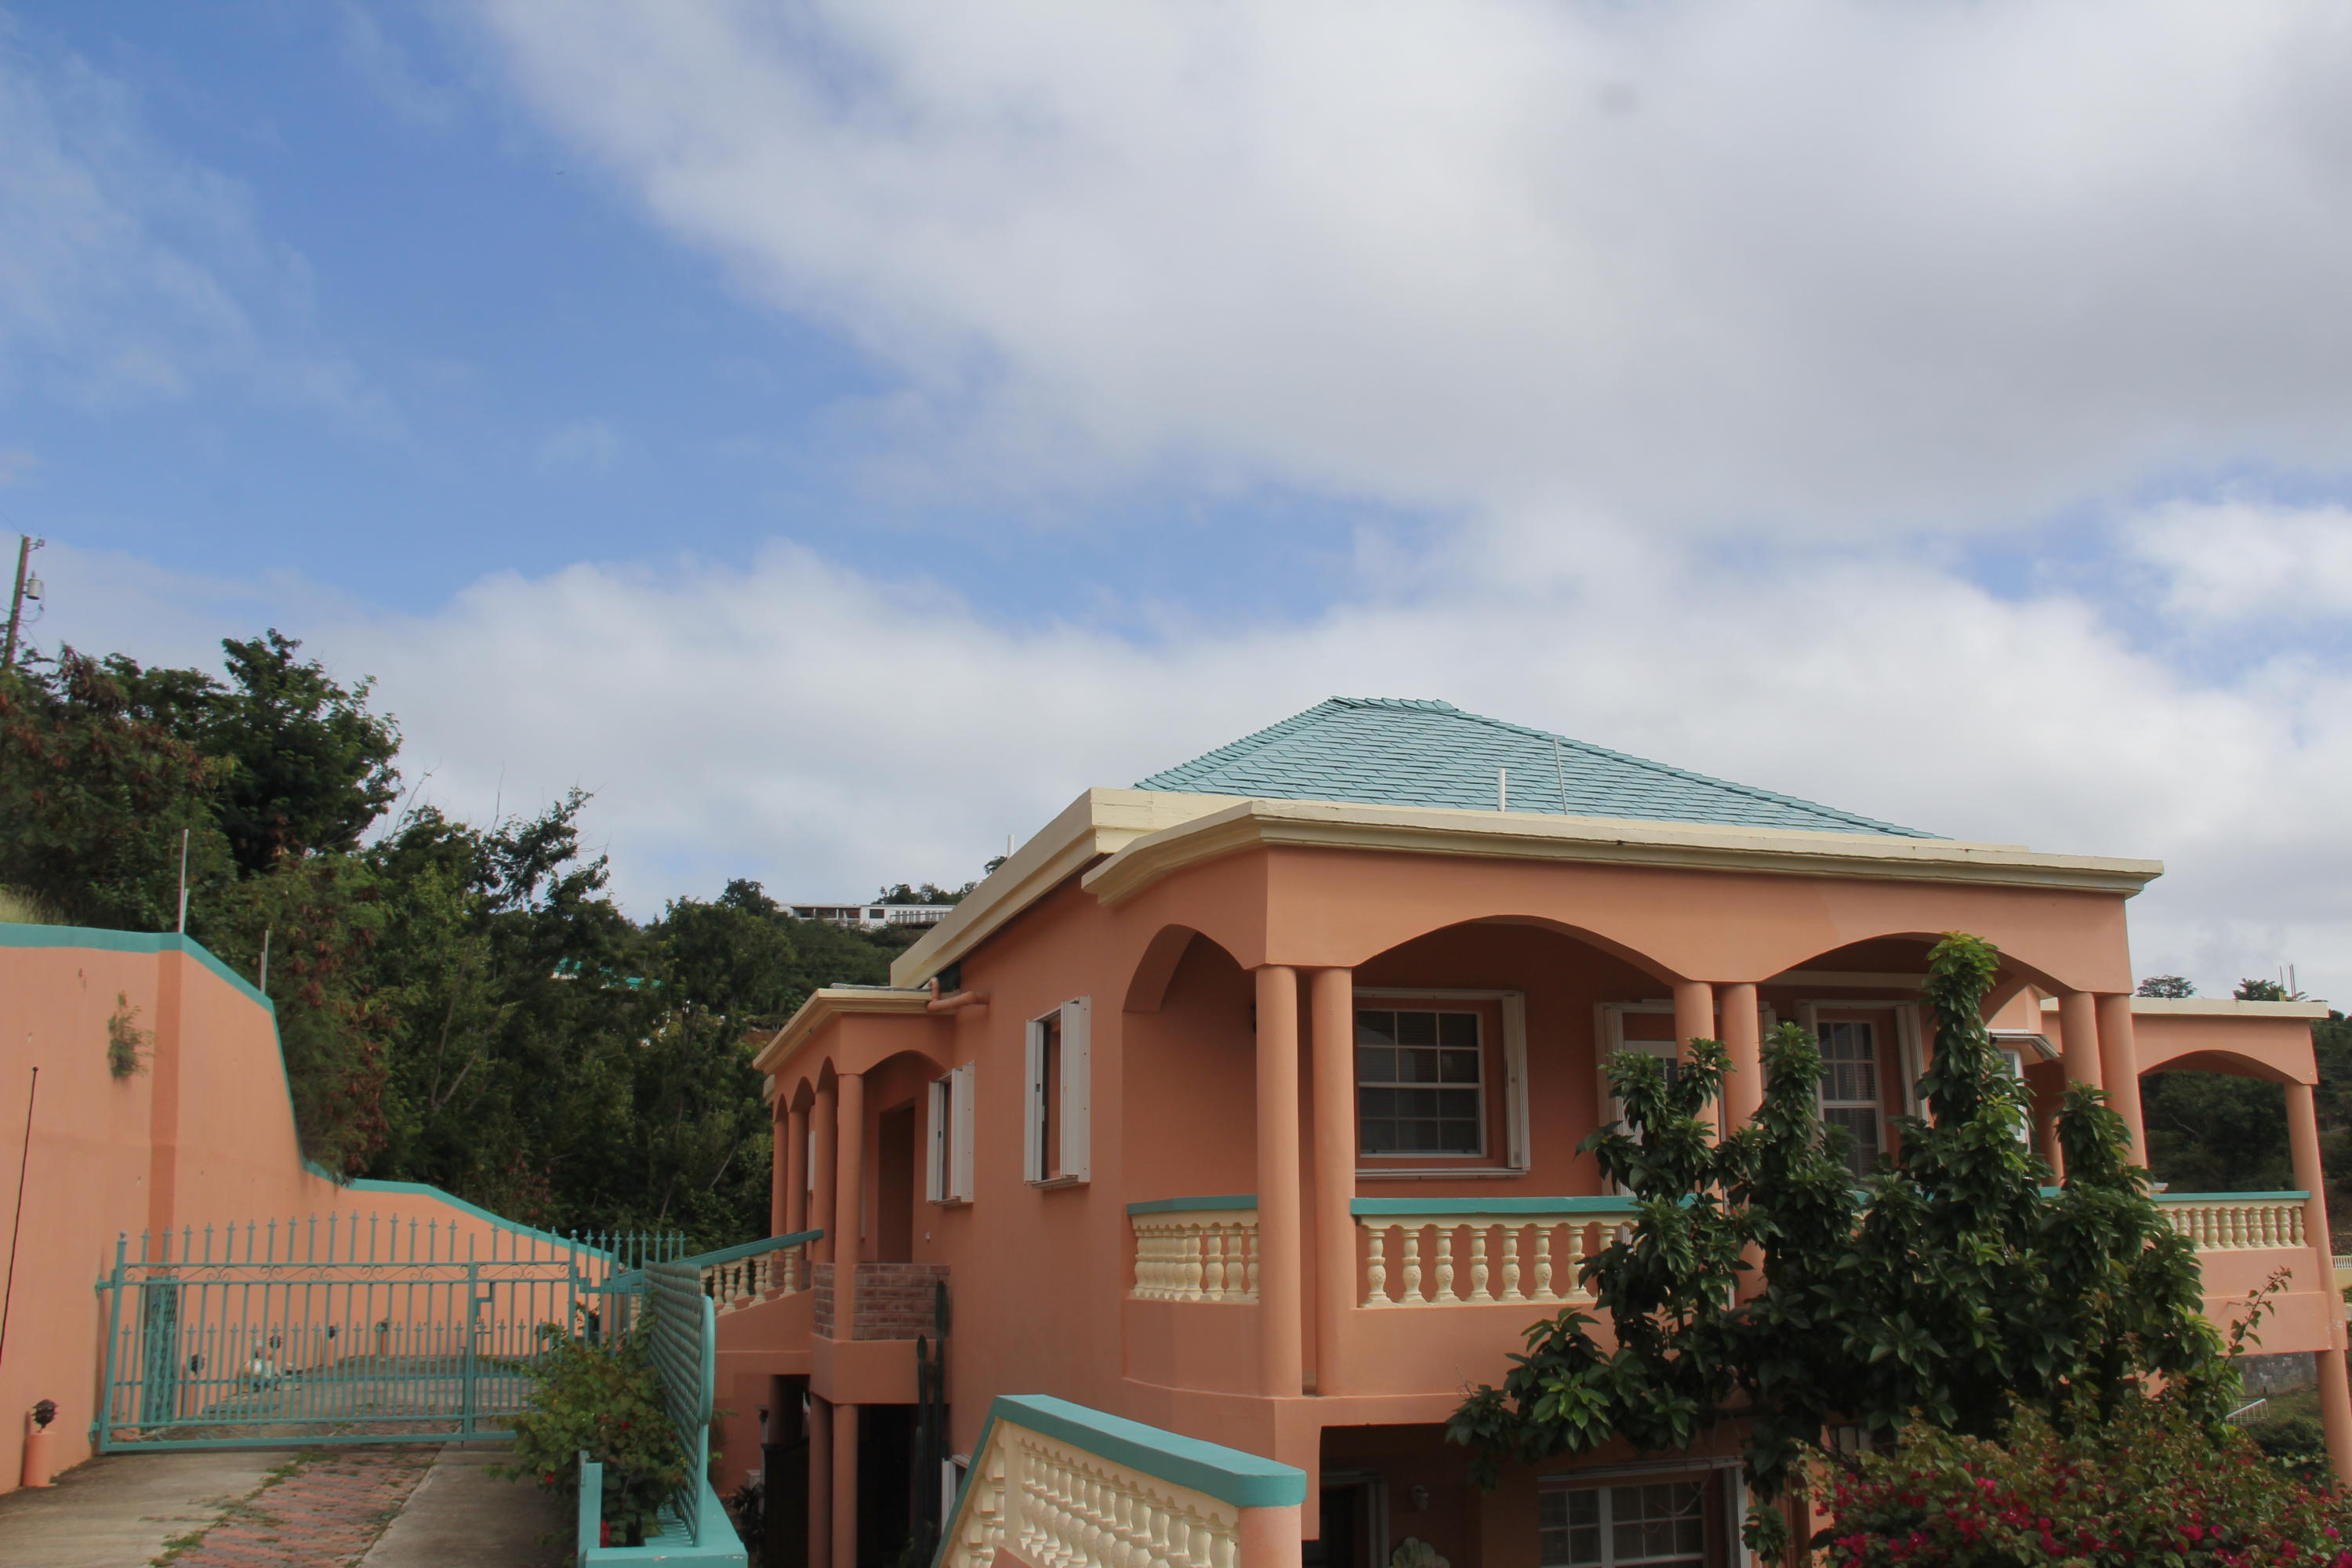 Multi-Family Home for Rent at 15-54 Frenchman Bay FB 15-54 Frenchman Bay FB St Thomas, Virgin Islands 00802 United States Virgin Islands